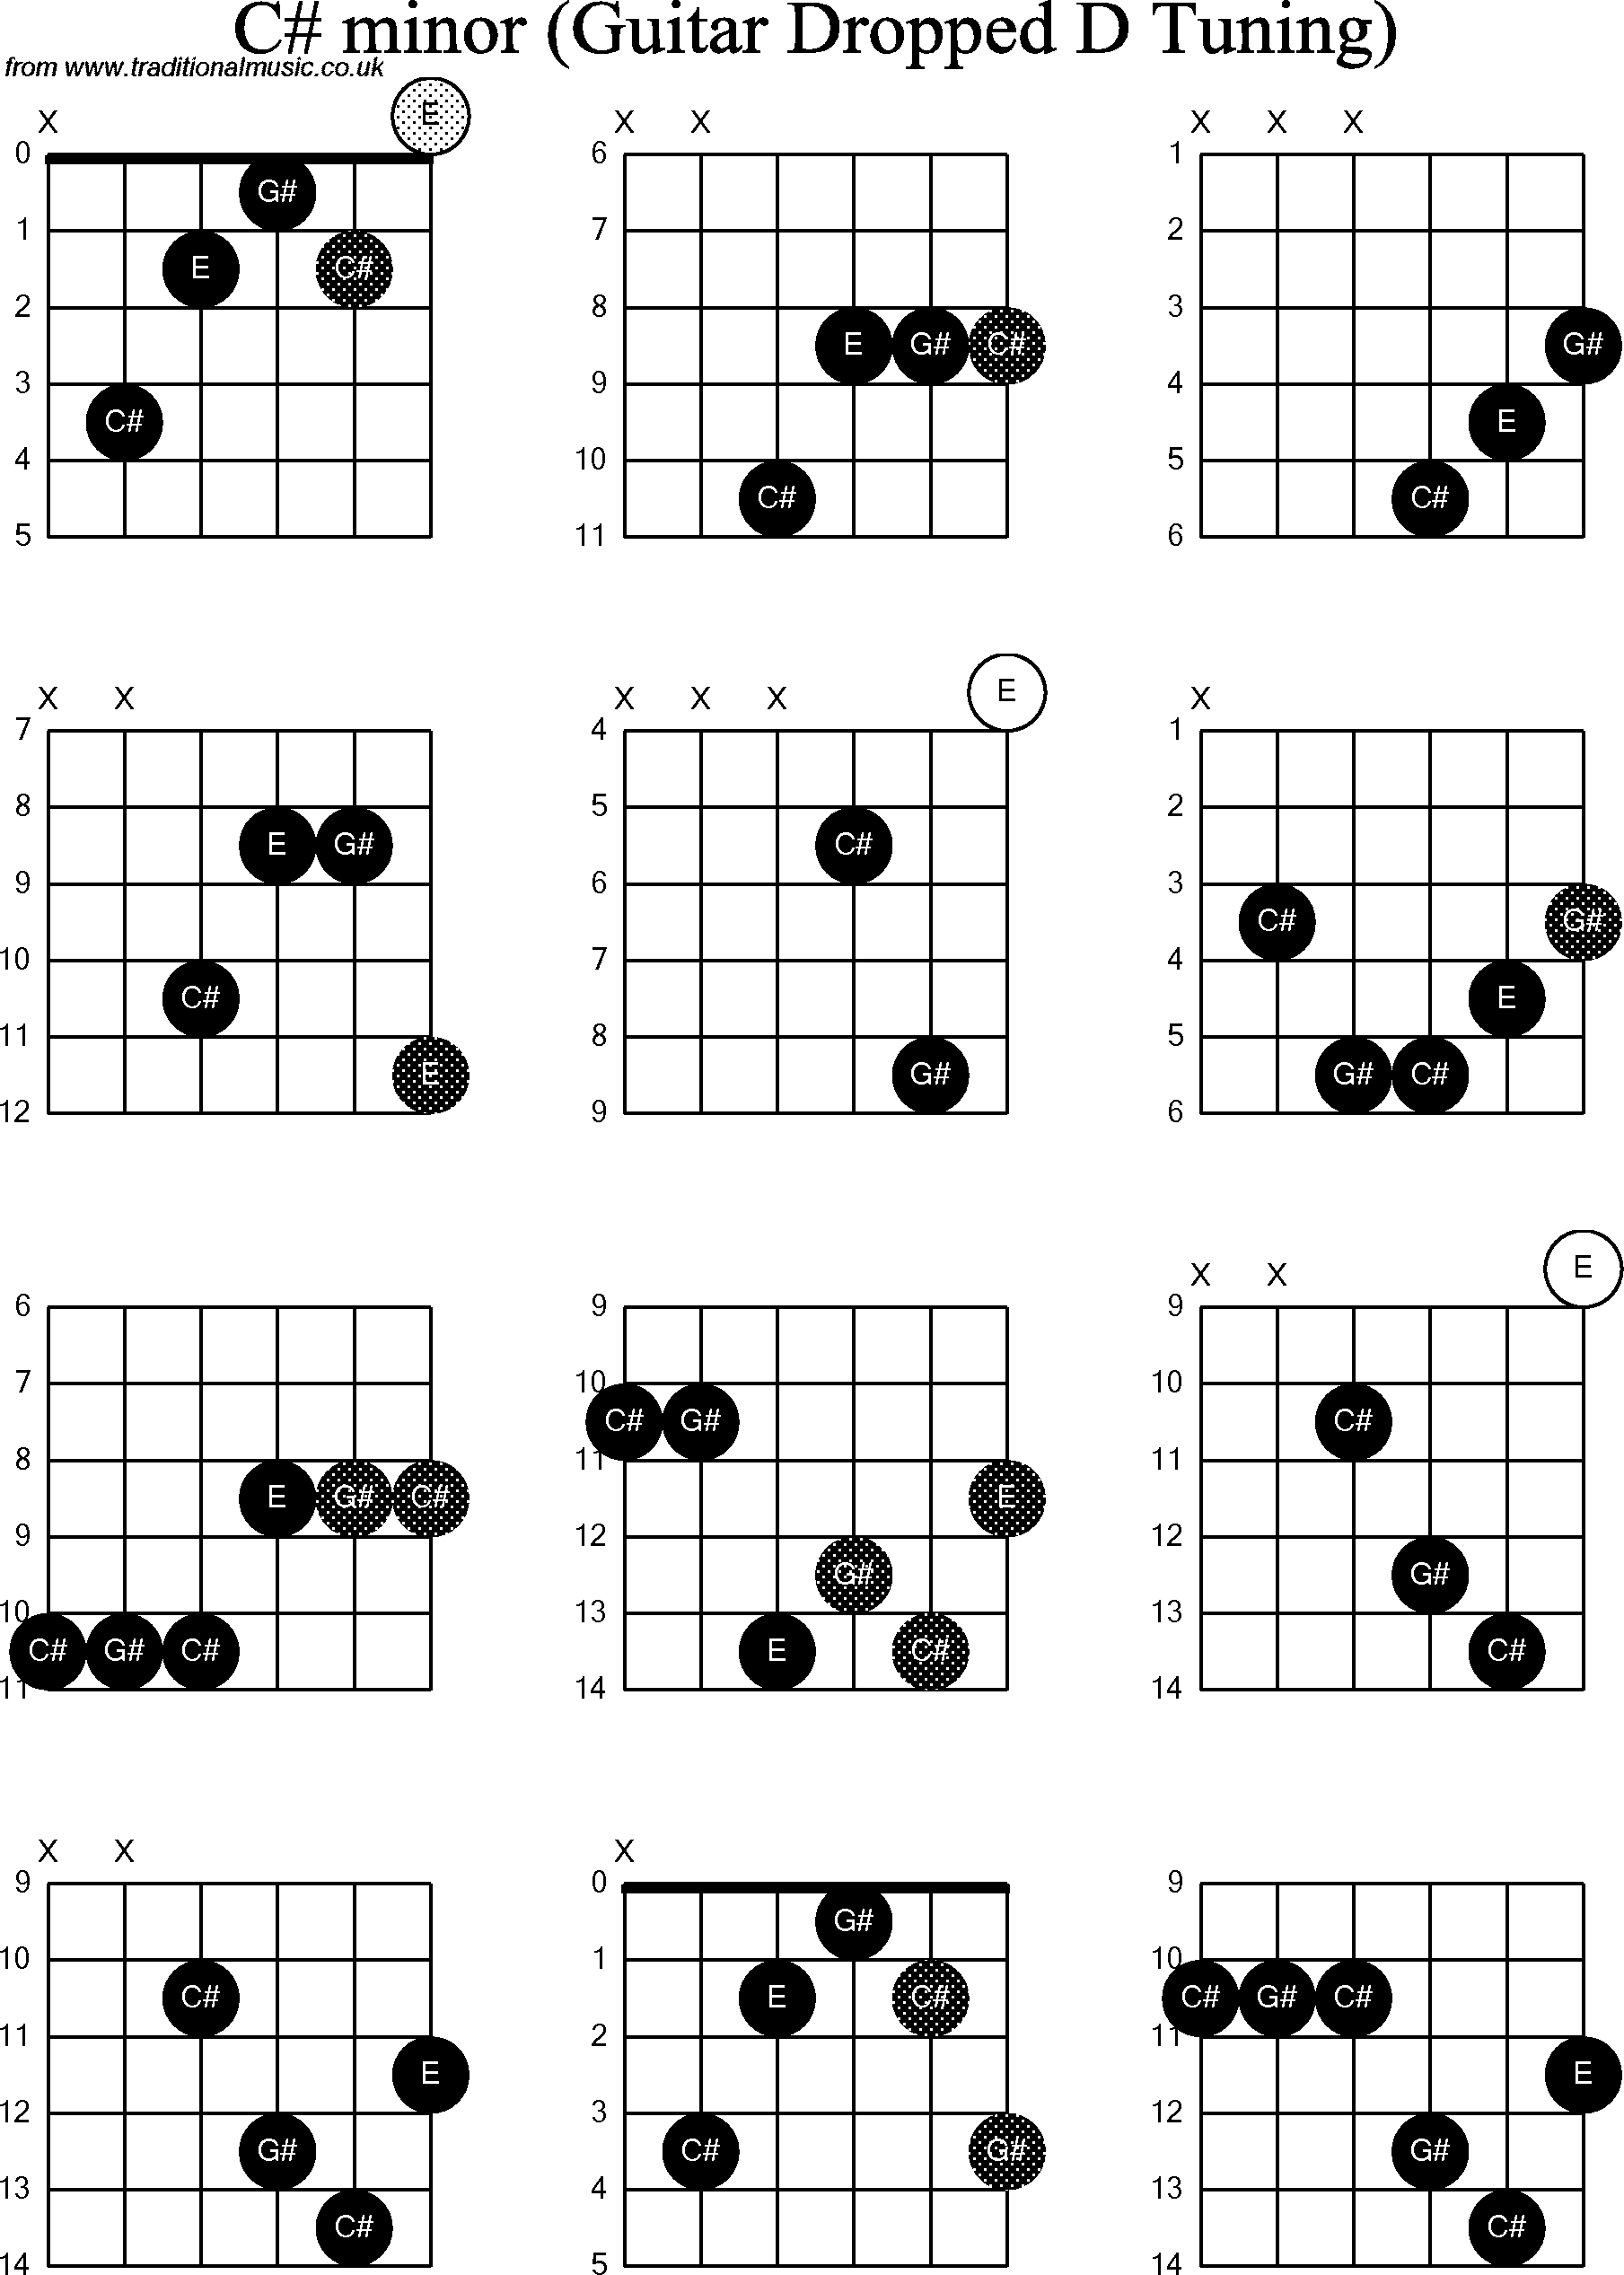 Chord Diagrams For Dropped D Guitardadgbe C Sharp Minor